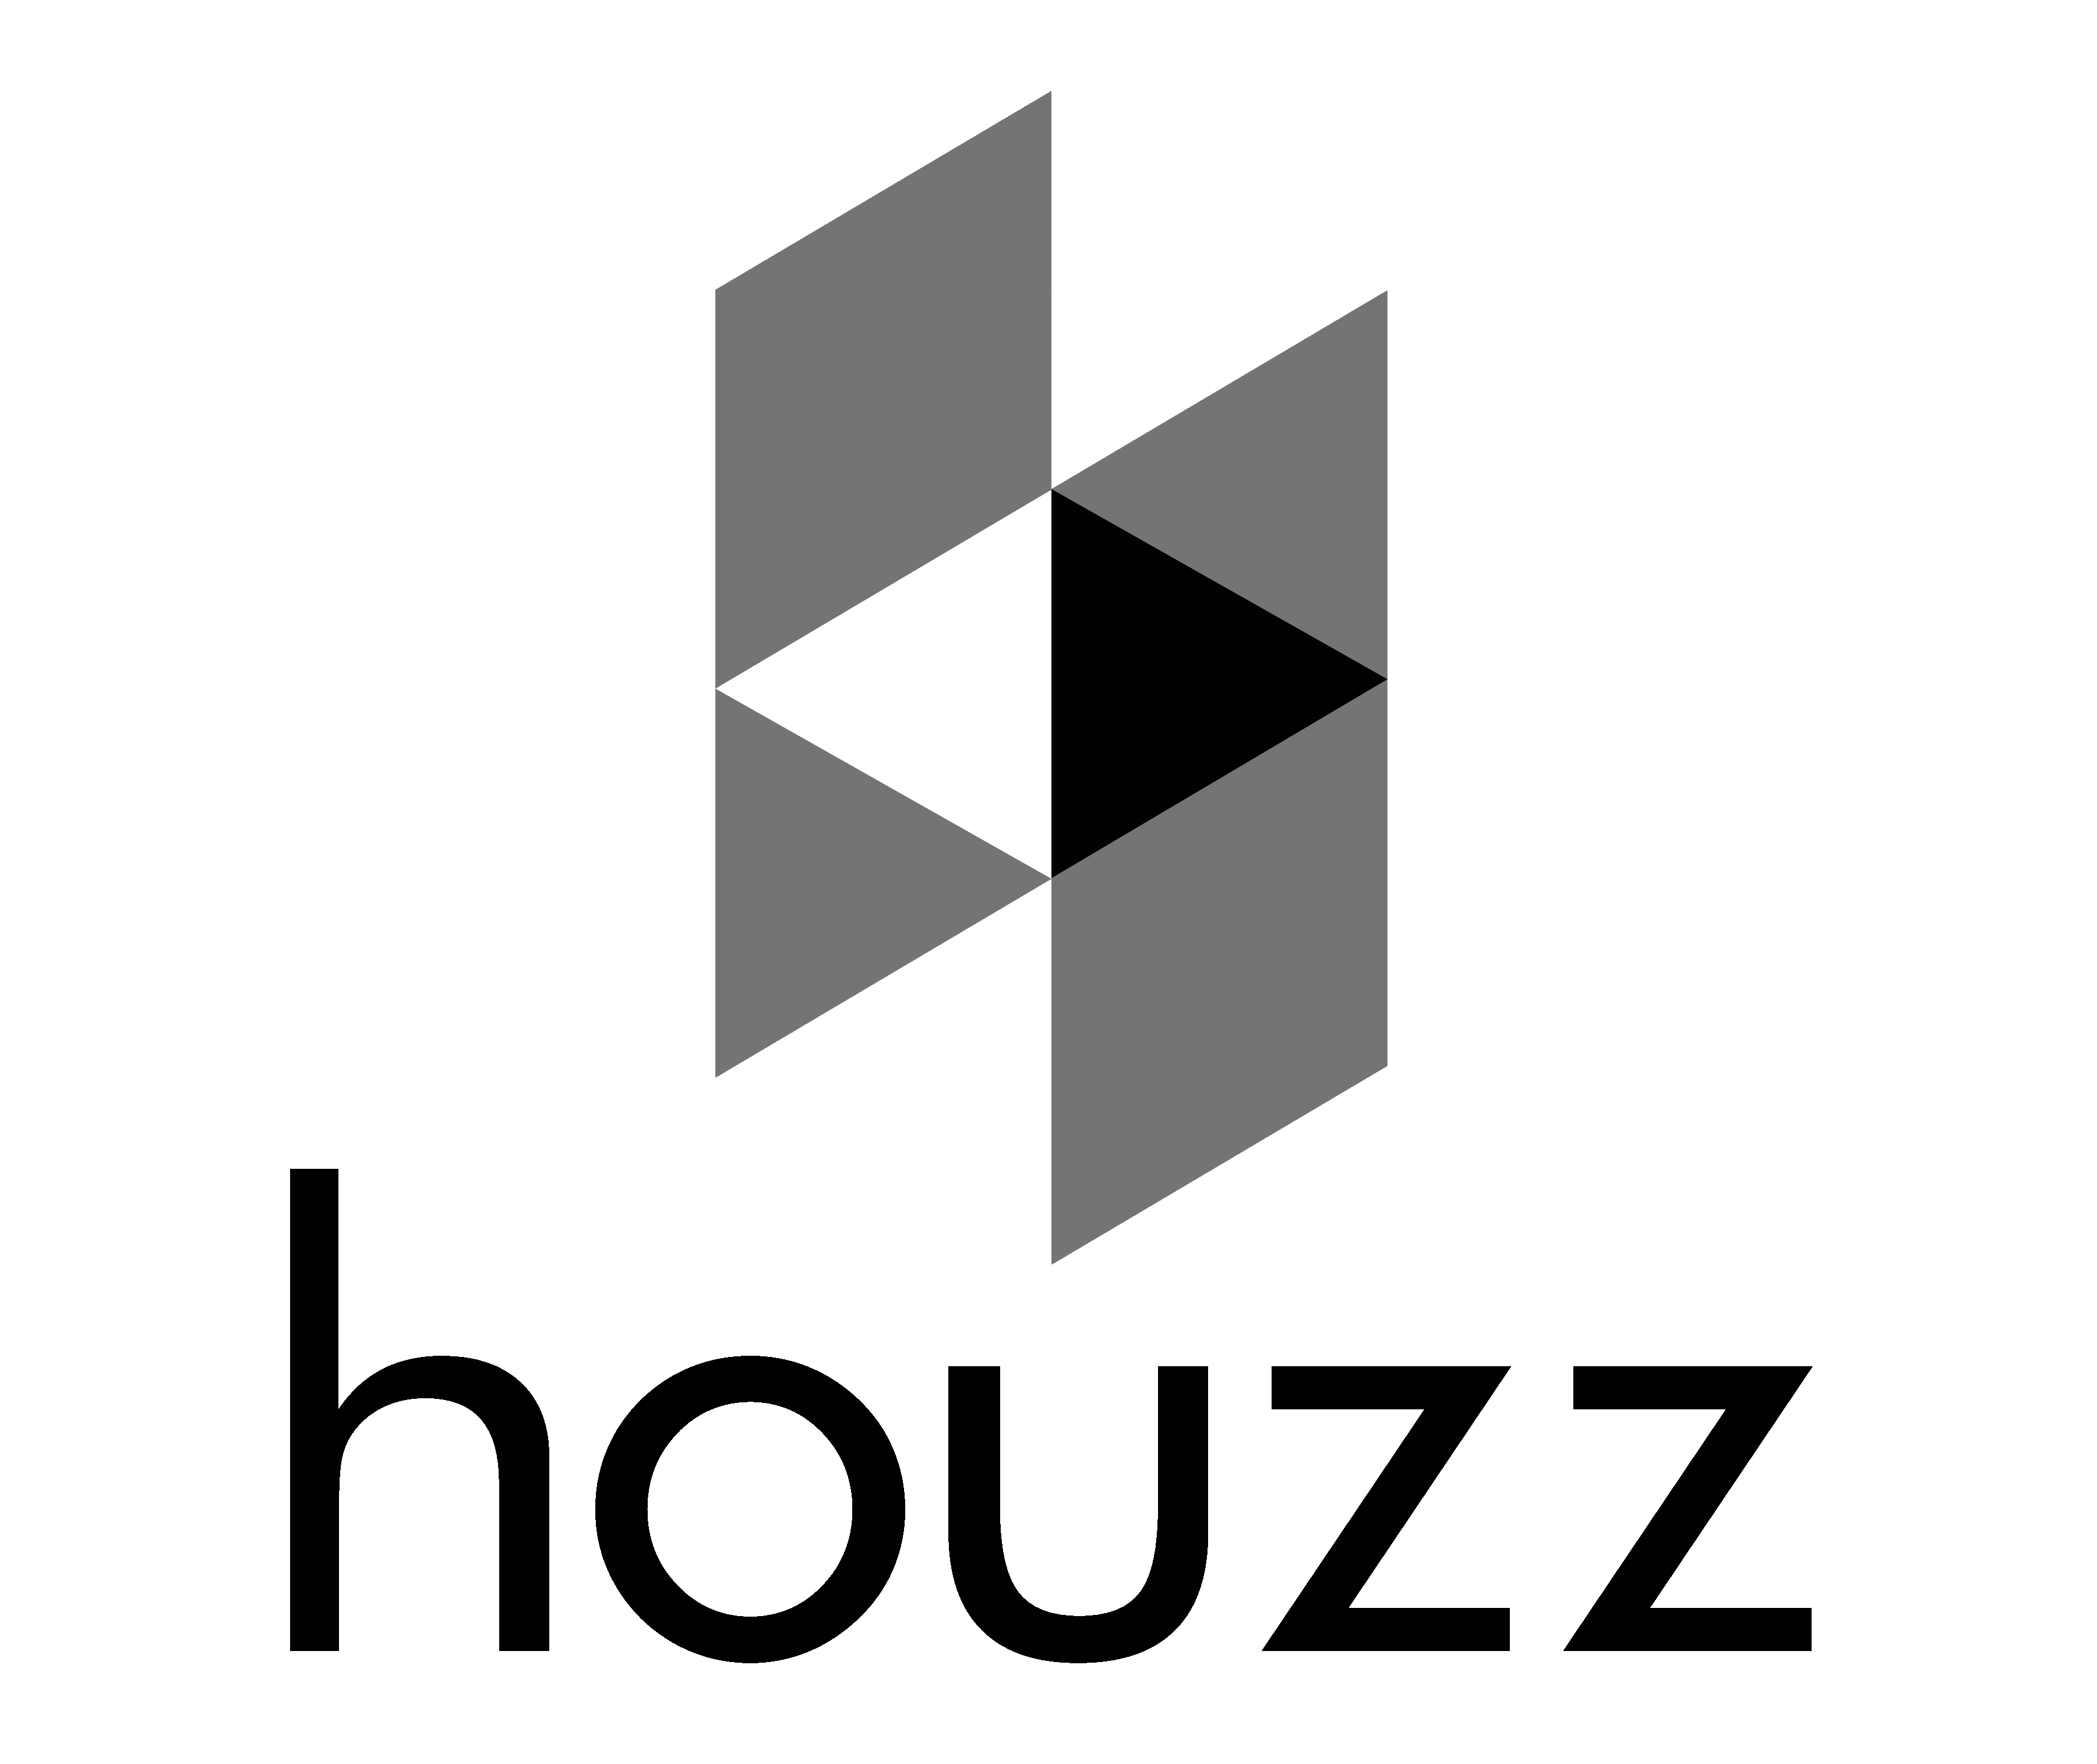 Houzz logo houzz symbol meaning history and evolution for Houzz icon vector